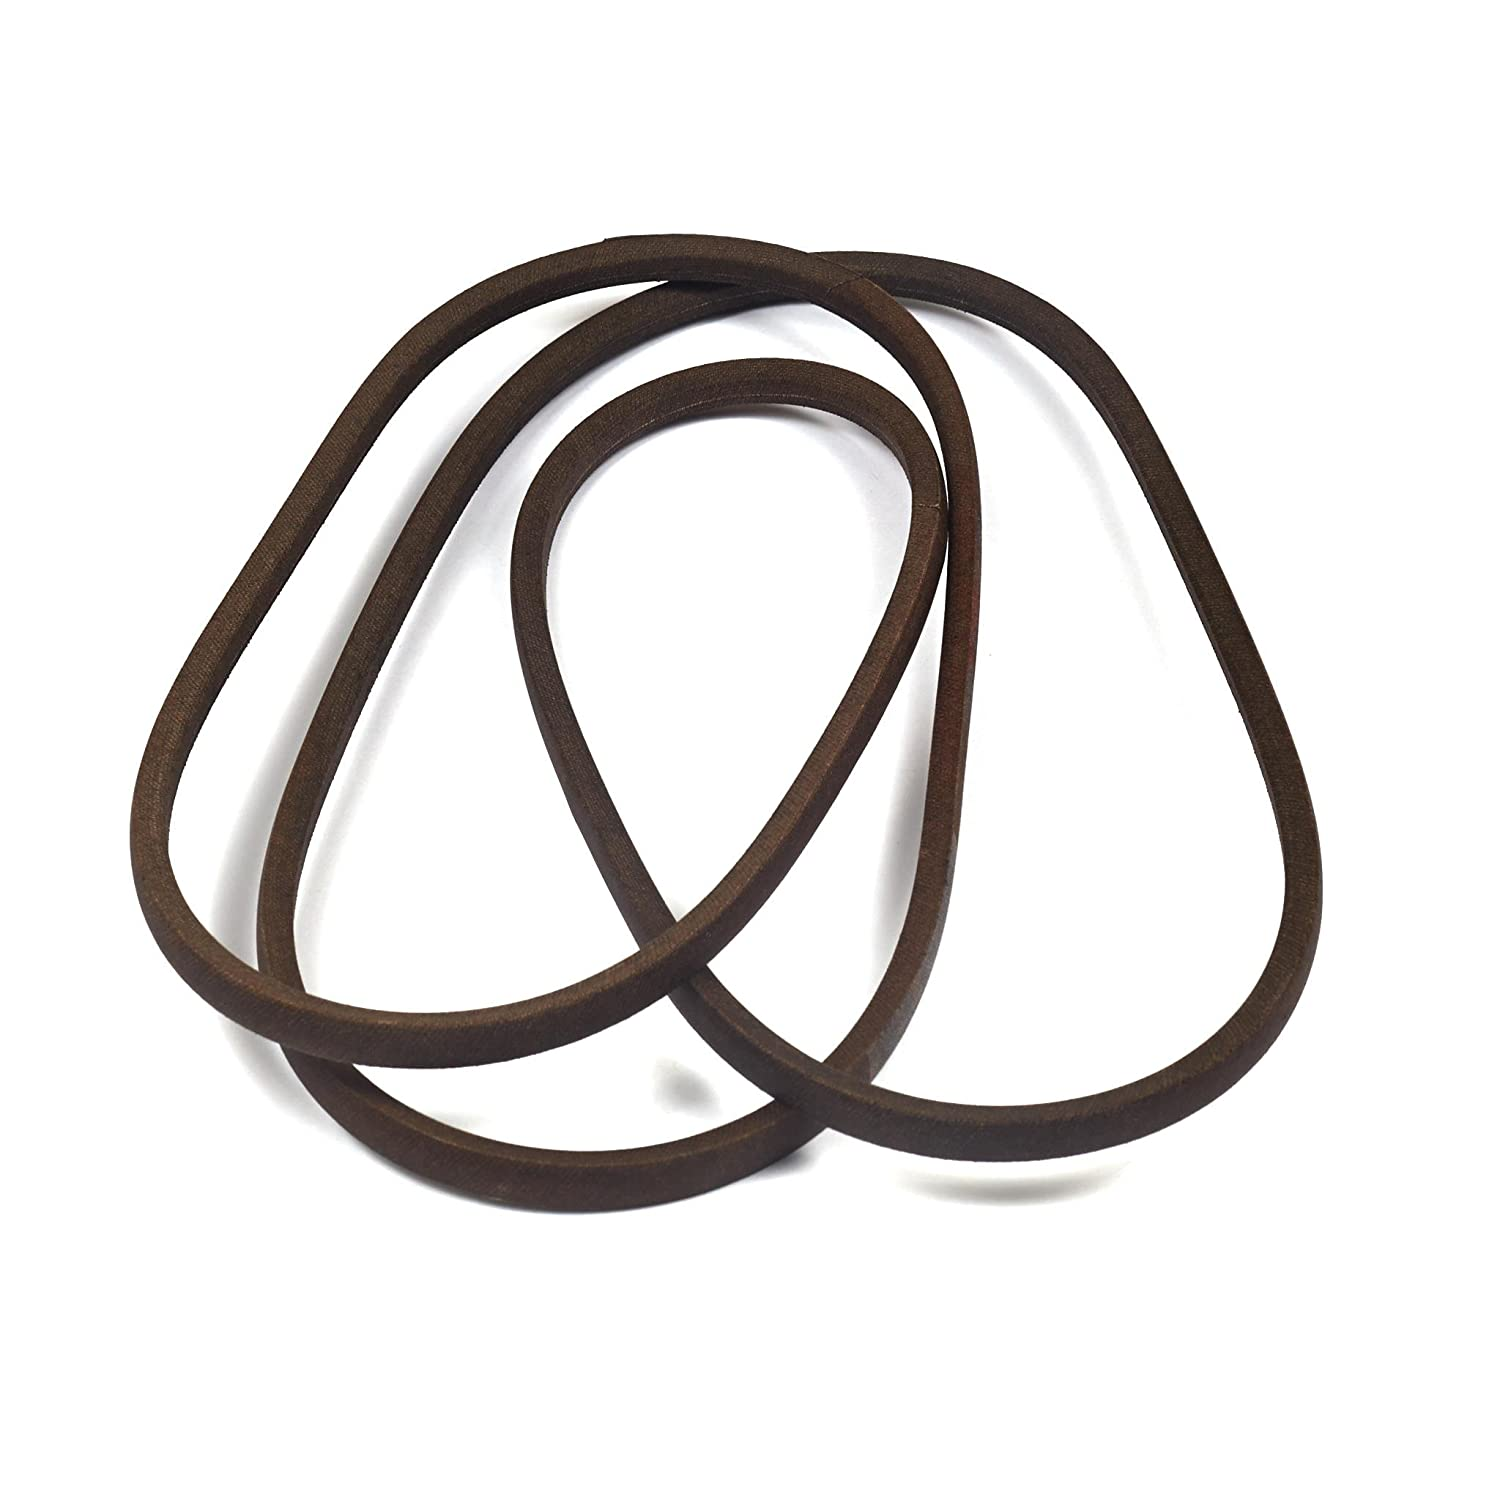 BRIGGS & STRATTON 037x87ma Hayter/Murray Motion Drive V-Belt, Brown, 30/38/40/42/46-Inch